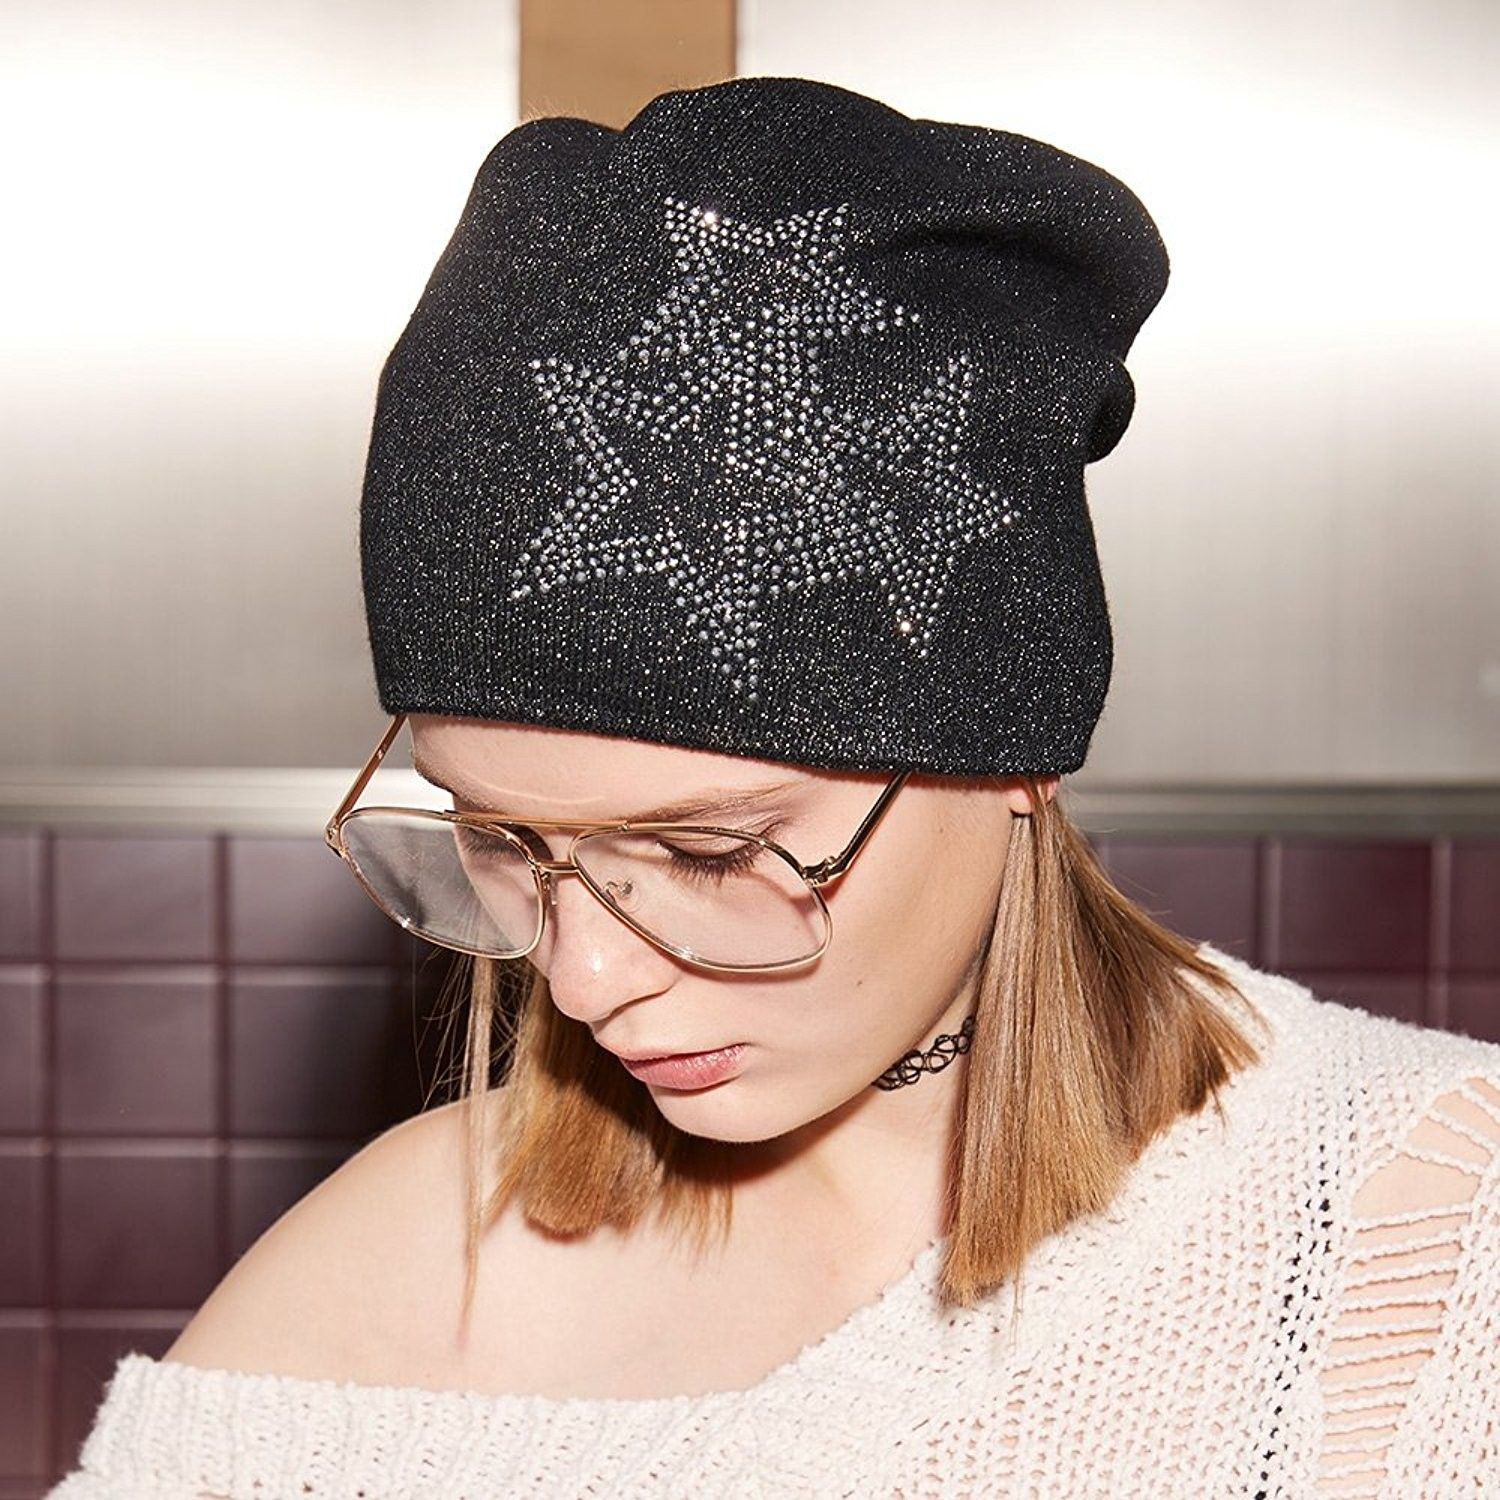 ce0ff6f176e Beanie Hats For Women Winter Knit Beanie Hat Silver Sparkles Fall Wool Hat  - Black - C2186HIIQEK - Hats   Caps